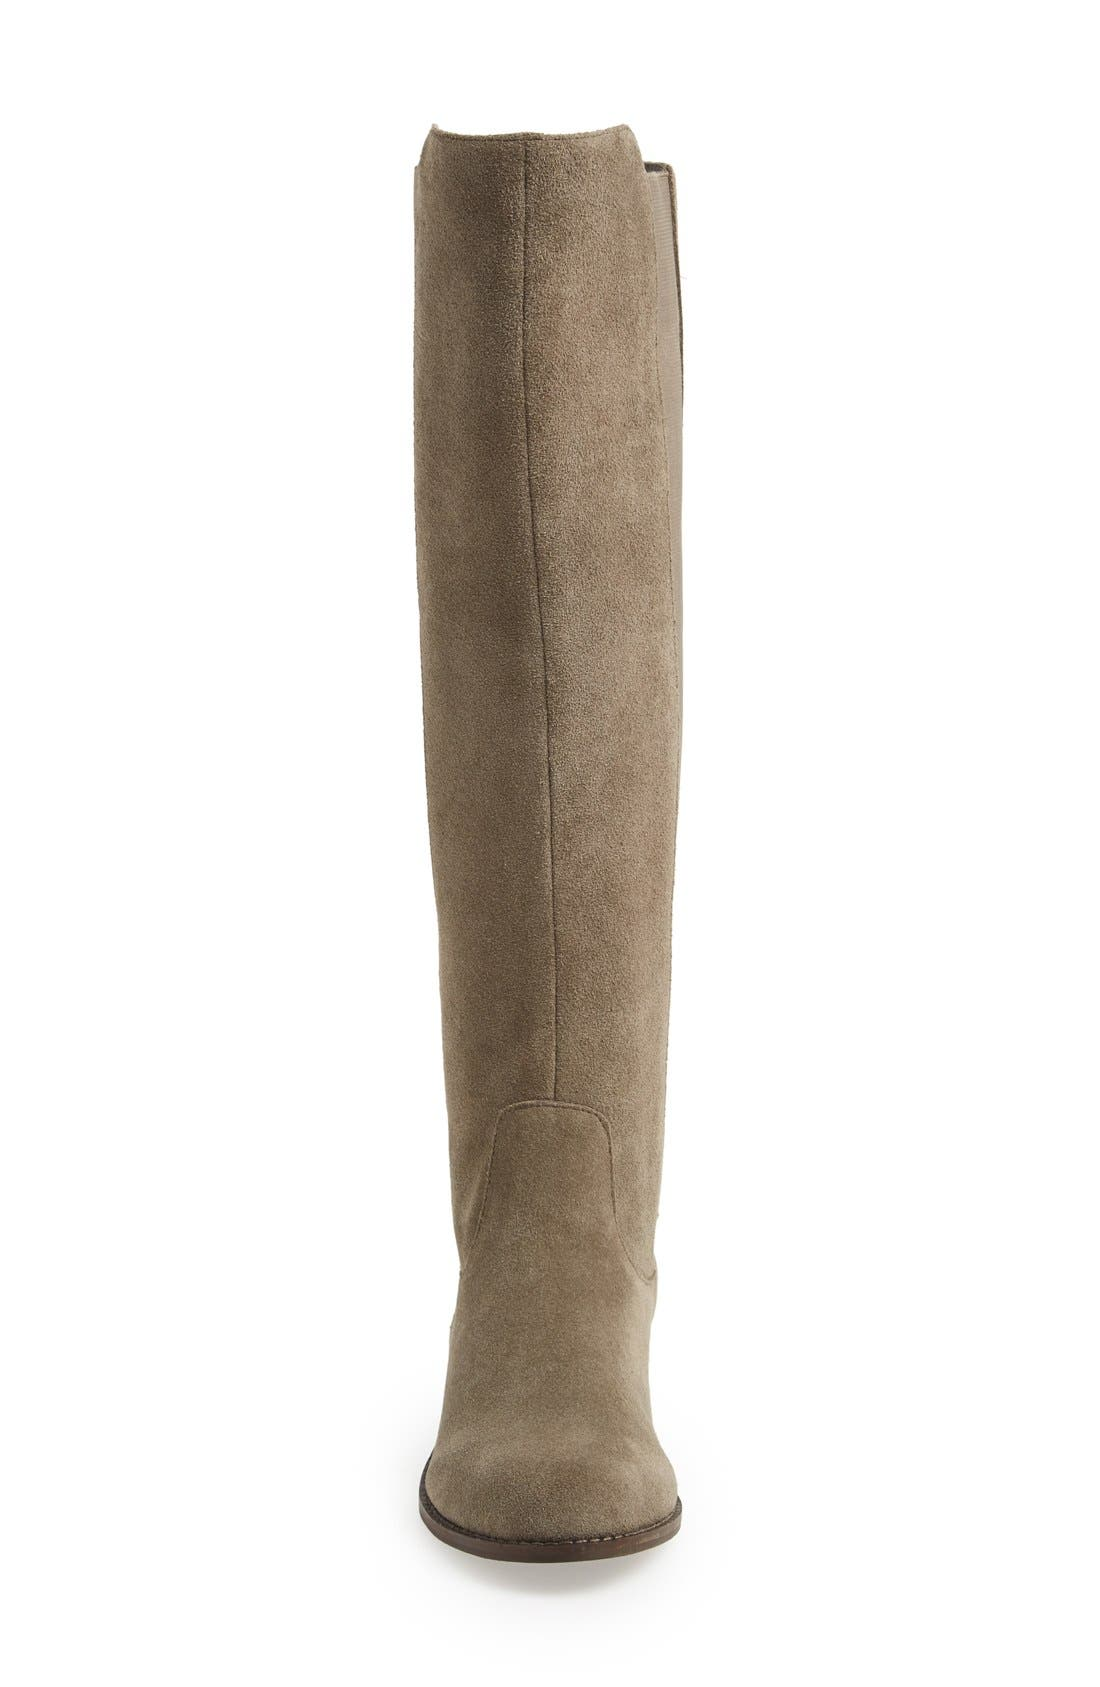 Alternate Image 3  - Very Volatile 'Timber' Suede Knee High Boot (Women)